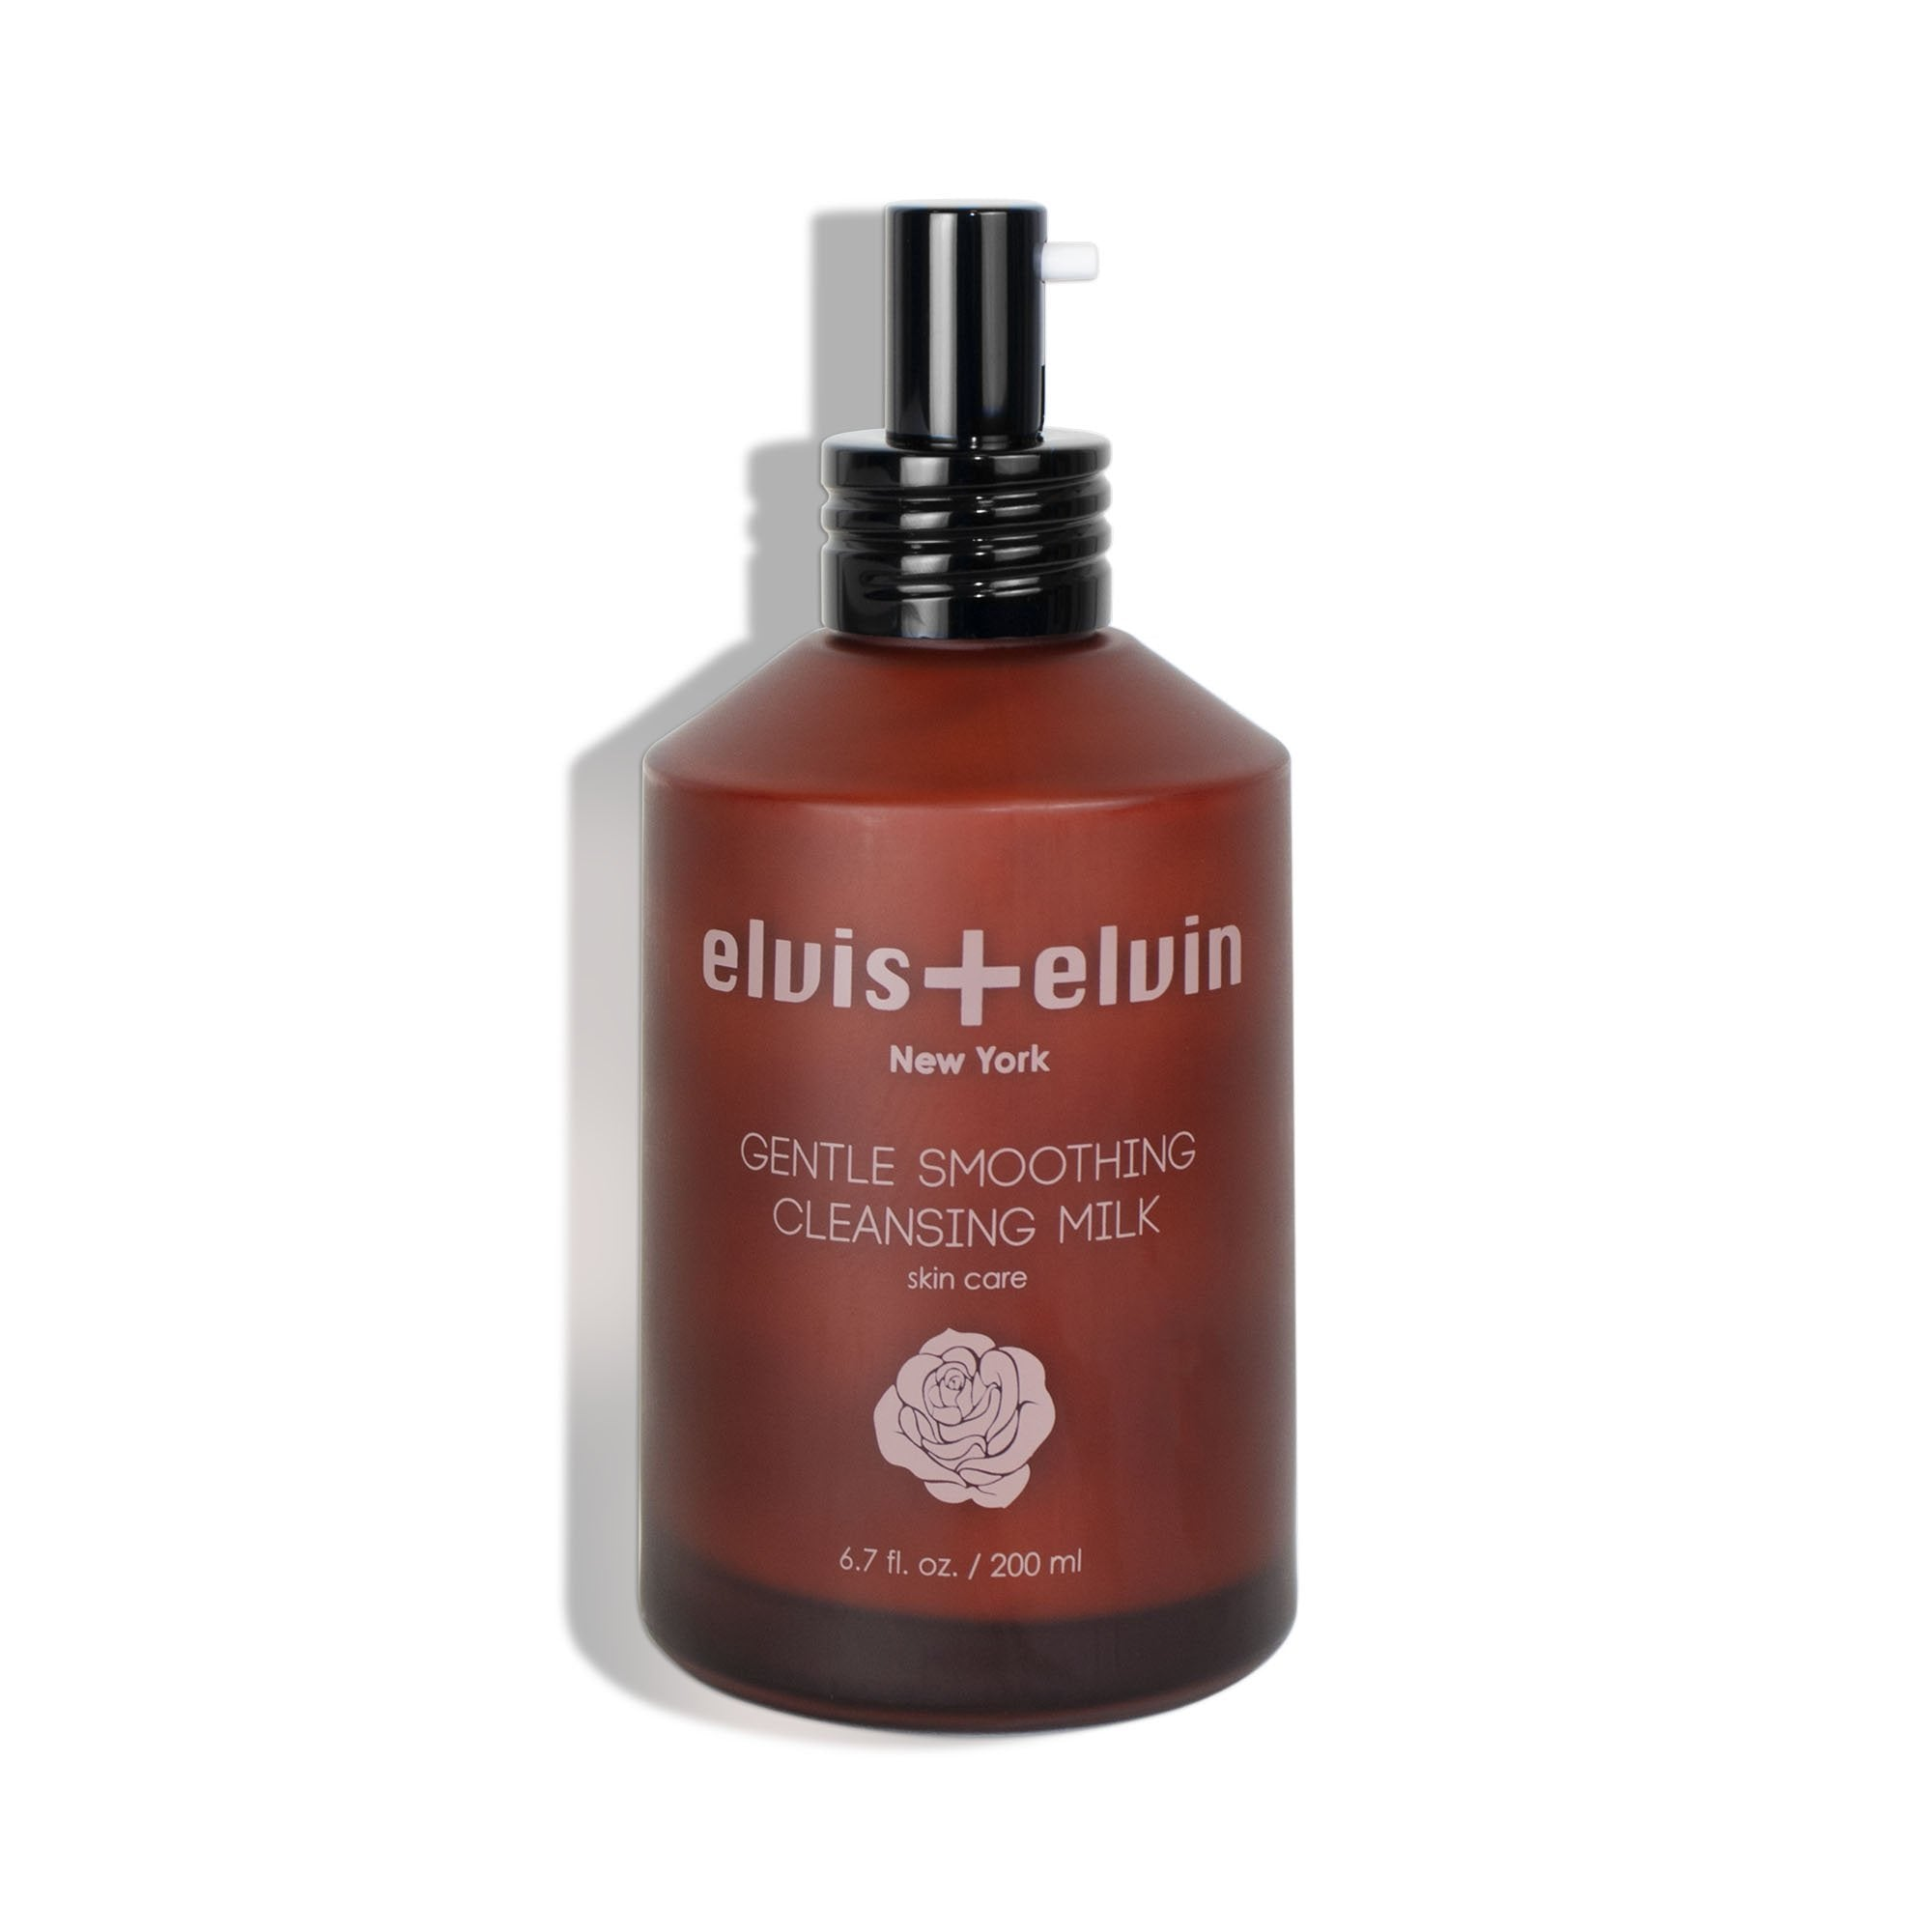 Gentle Smoothing Cleansing Milk by Beauty.Elvis-Elvin